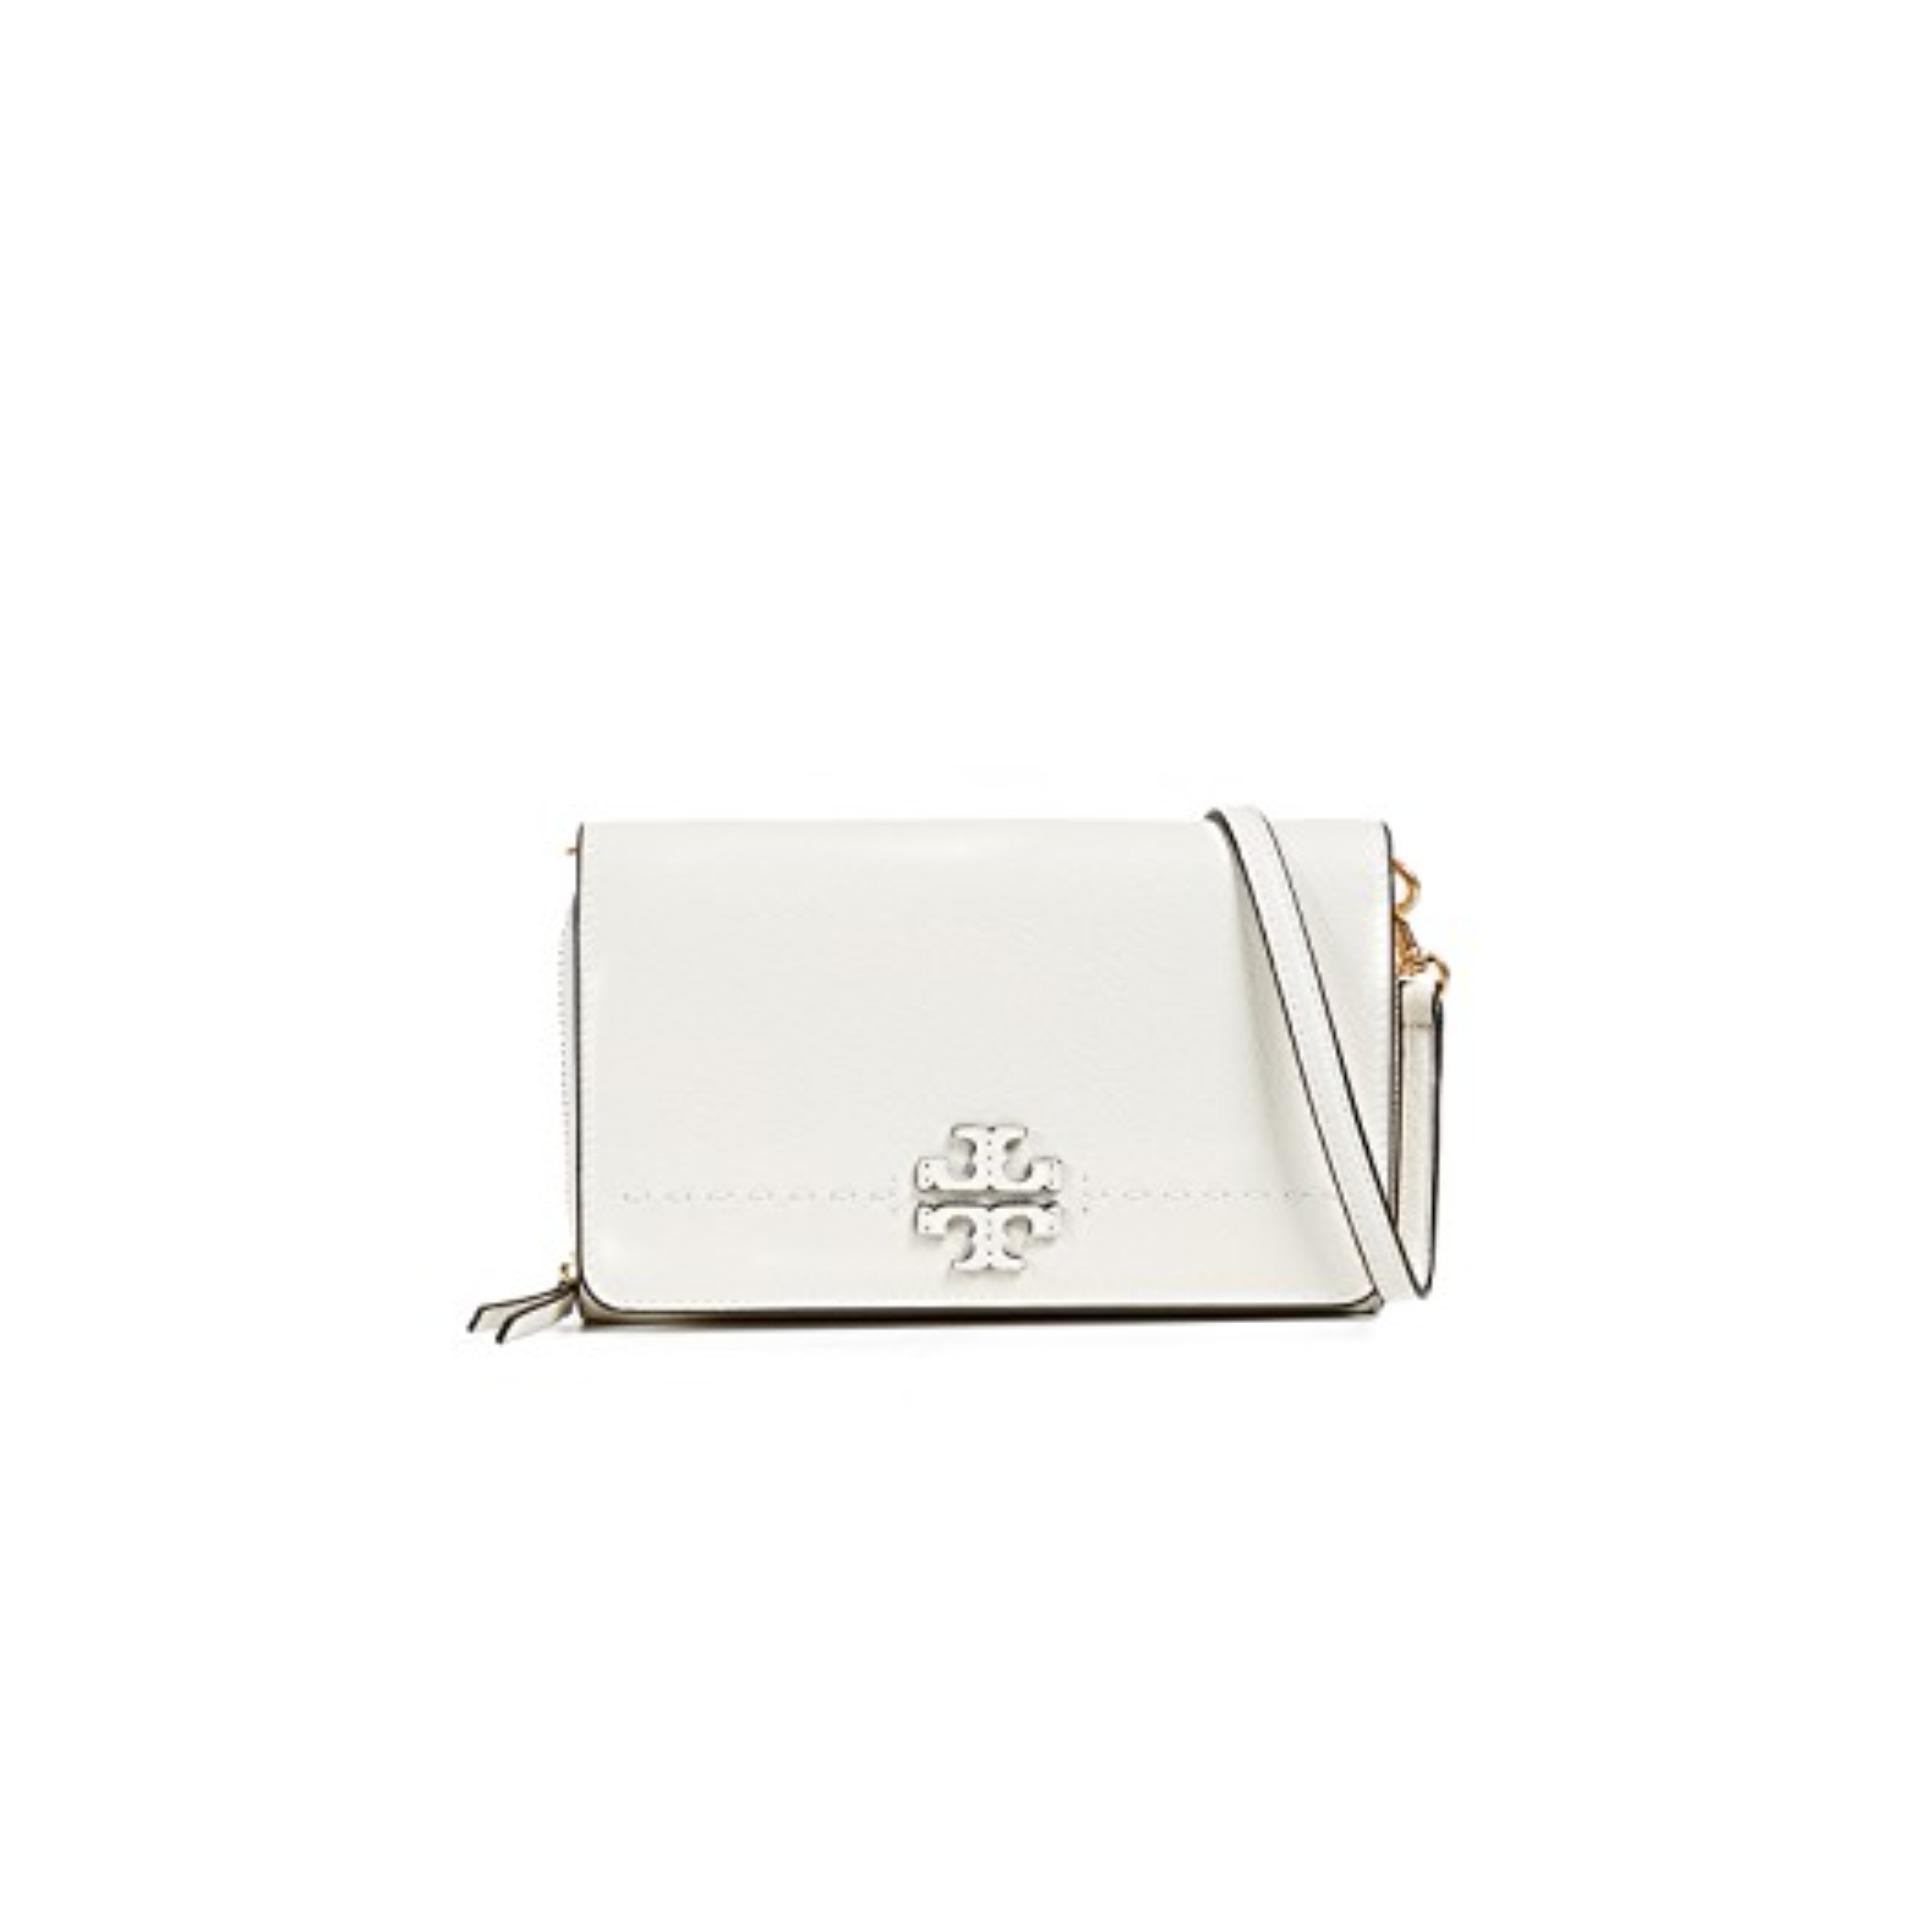 Price Tory Burch Mcgraw Flat Wallet Cross Body Ivory Tory Burch Original